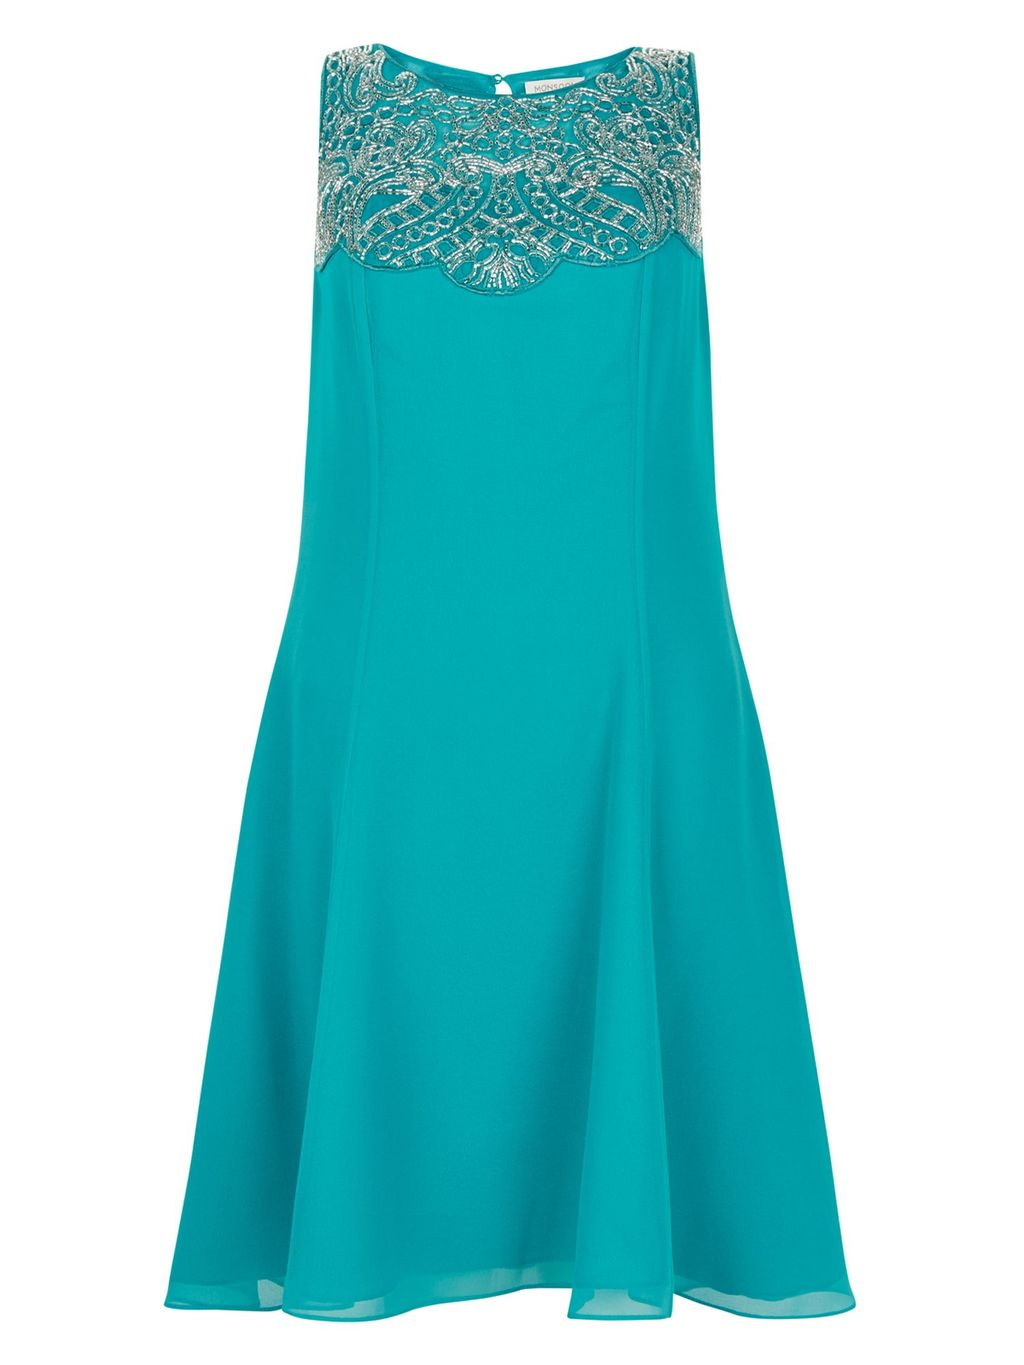 Clover Dress, Teal - style: shift; pattern: plain; sleeve style: sleeveless; predominant colour: teal; occasions: evening; length: on the knee; fit: body skimming; fibres: polyester/polyamide - 100%; neckline: crew; sleeve length: sleeveless; pattern type: fabric; texture group: jersey - stretchy/drapey; season: s/s 2016; wardrobe: event